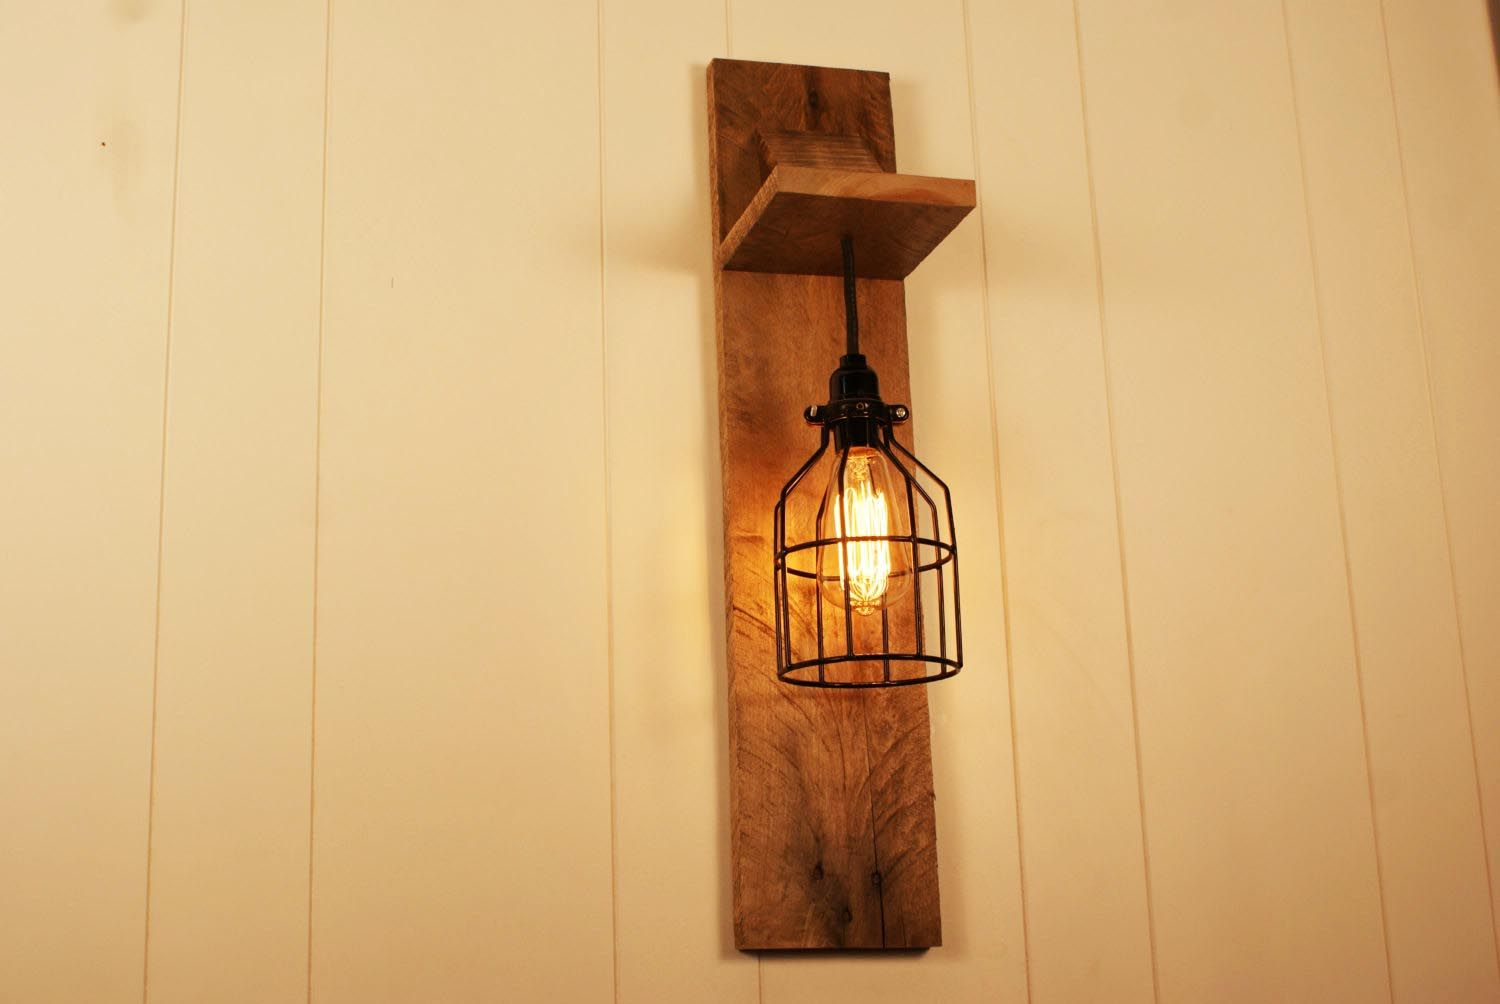 Wall Light Fixtures | Types: Plug In, Sconce, Mounted Lights ...